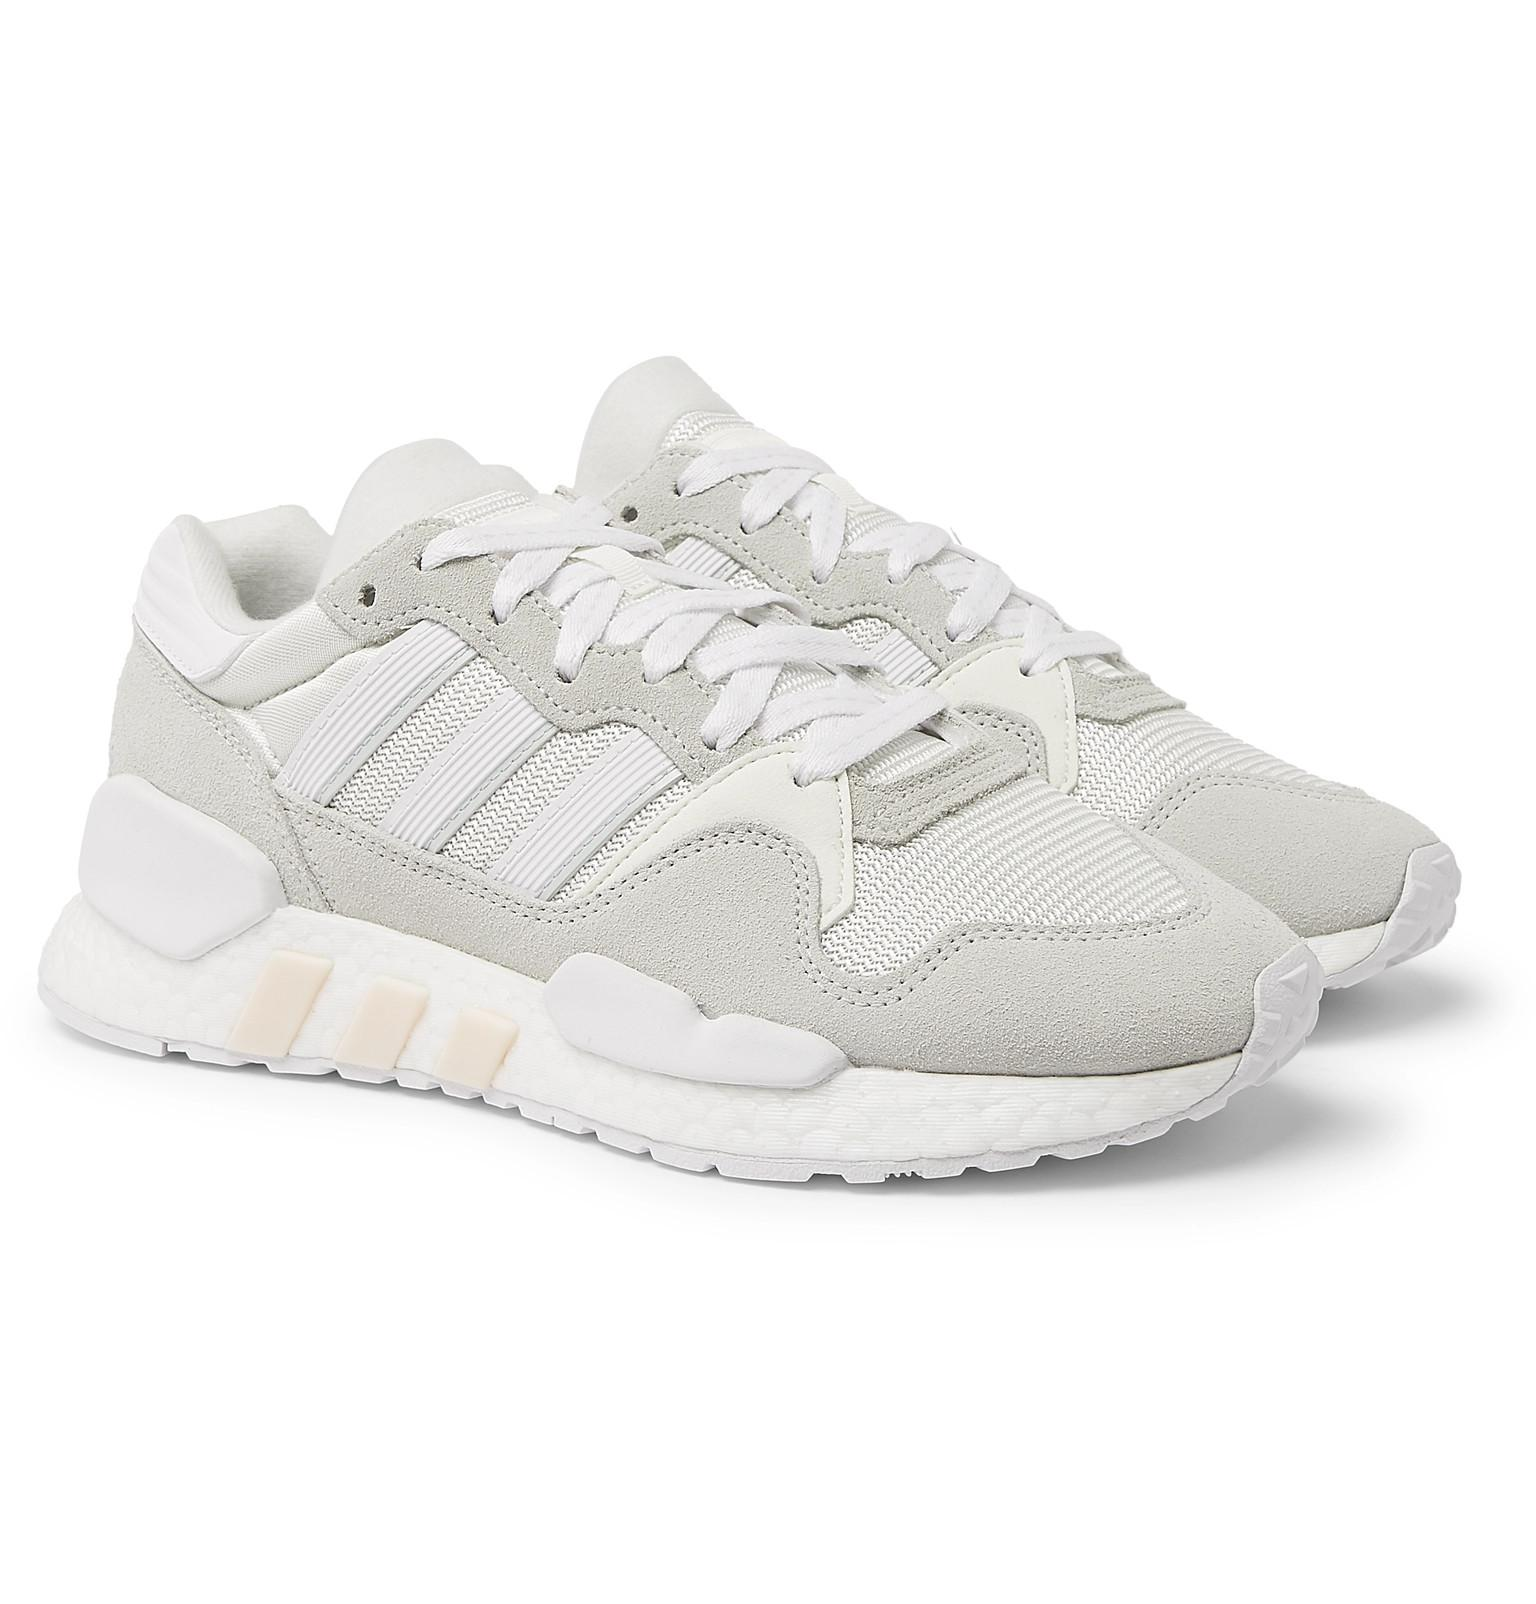 finest selection c614b a45d7 adidas Originals Zx 930 X Eqt Mesh And Suede Sneakers in ...